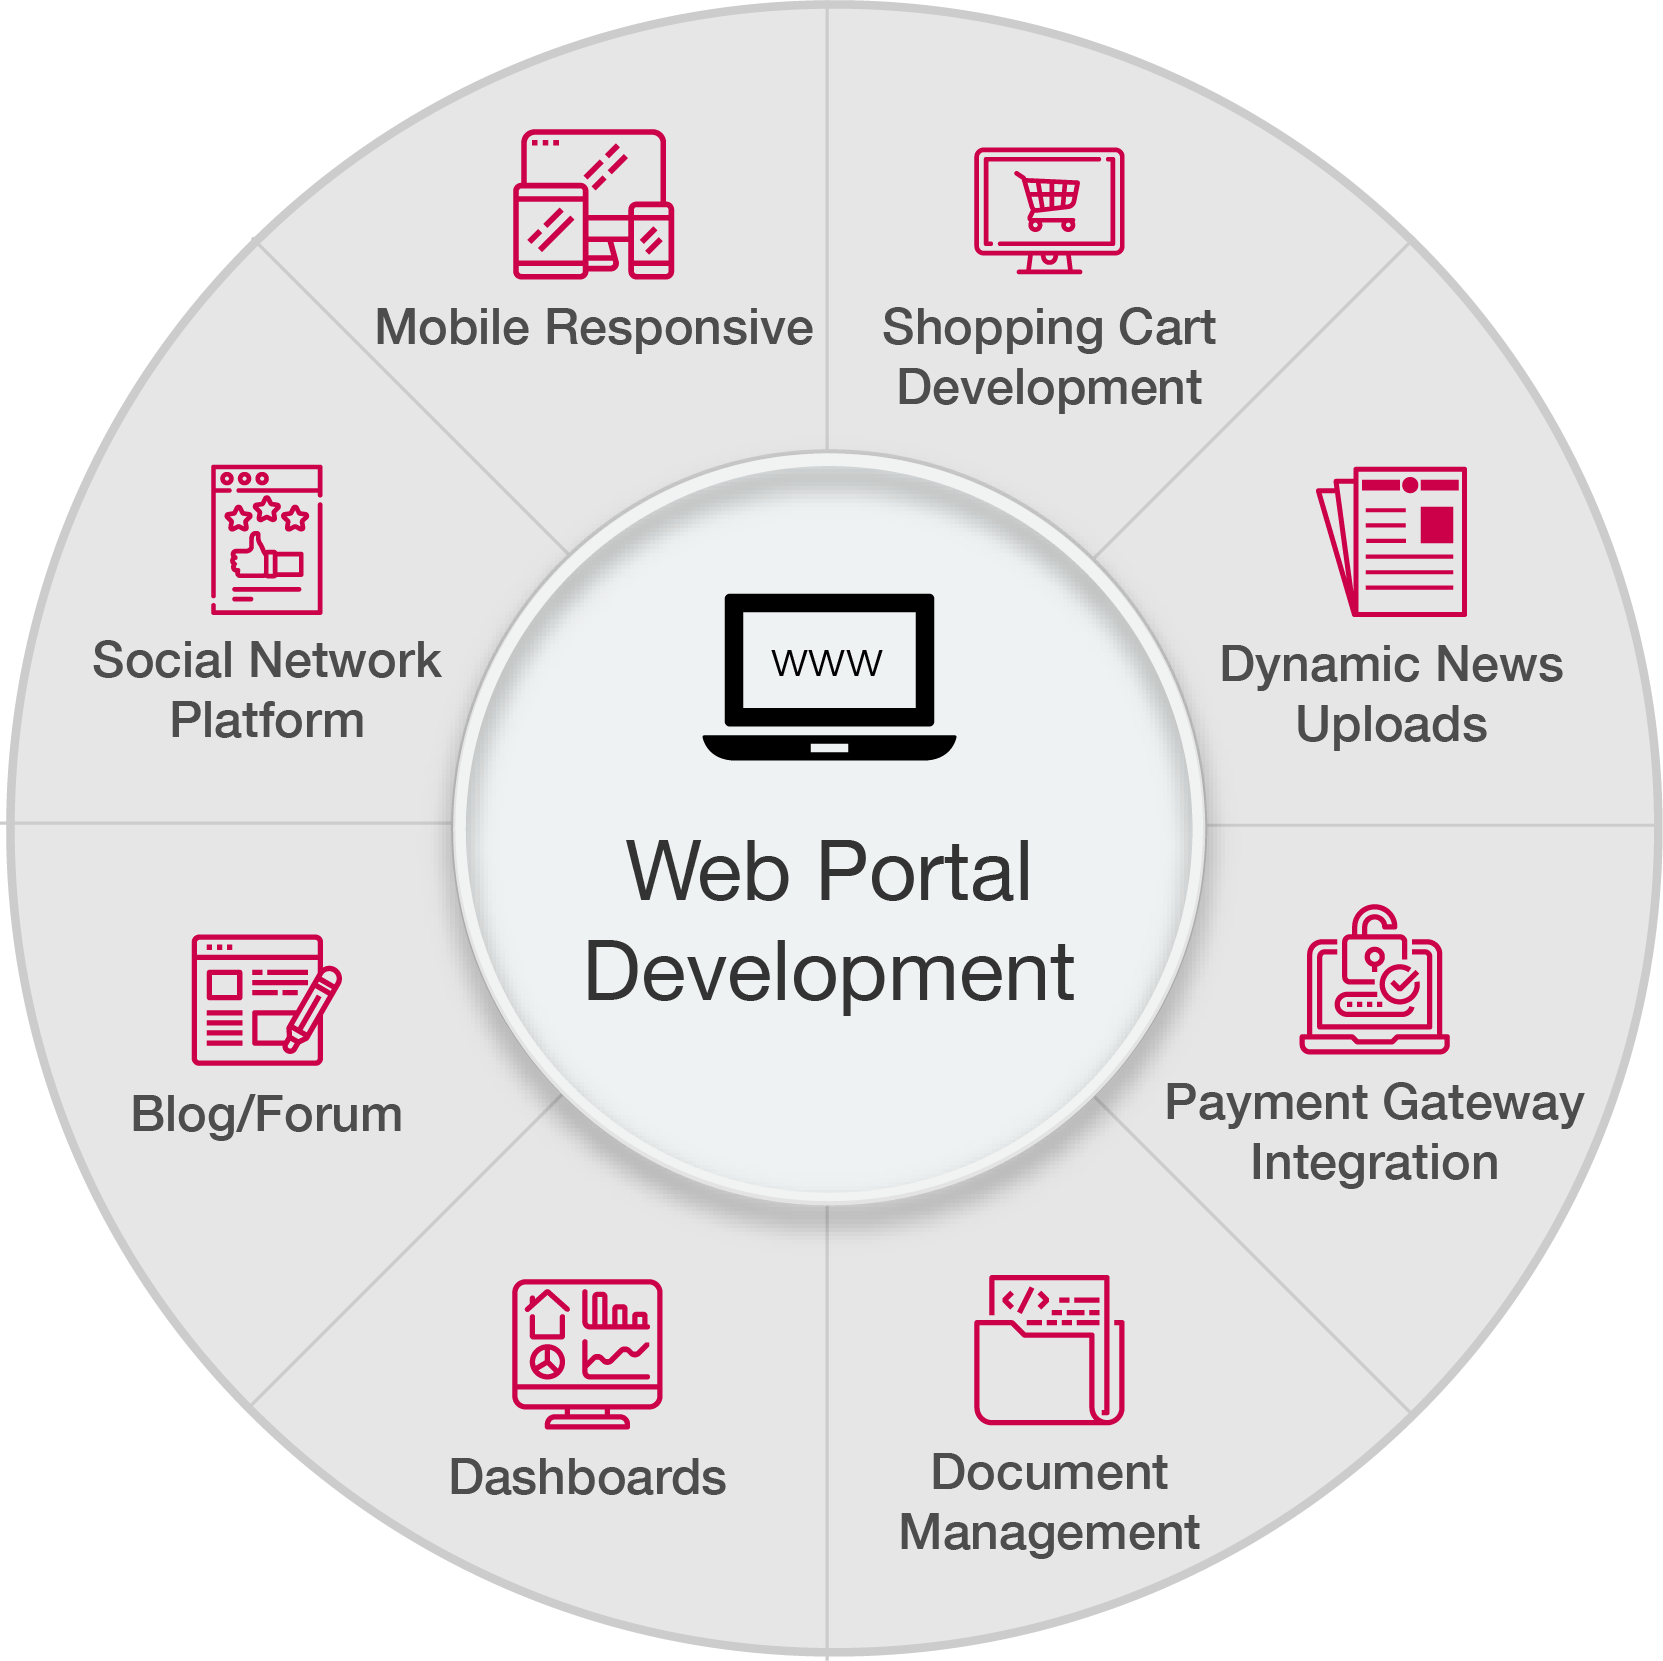 Enterprise Web Portal Development